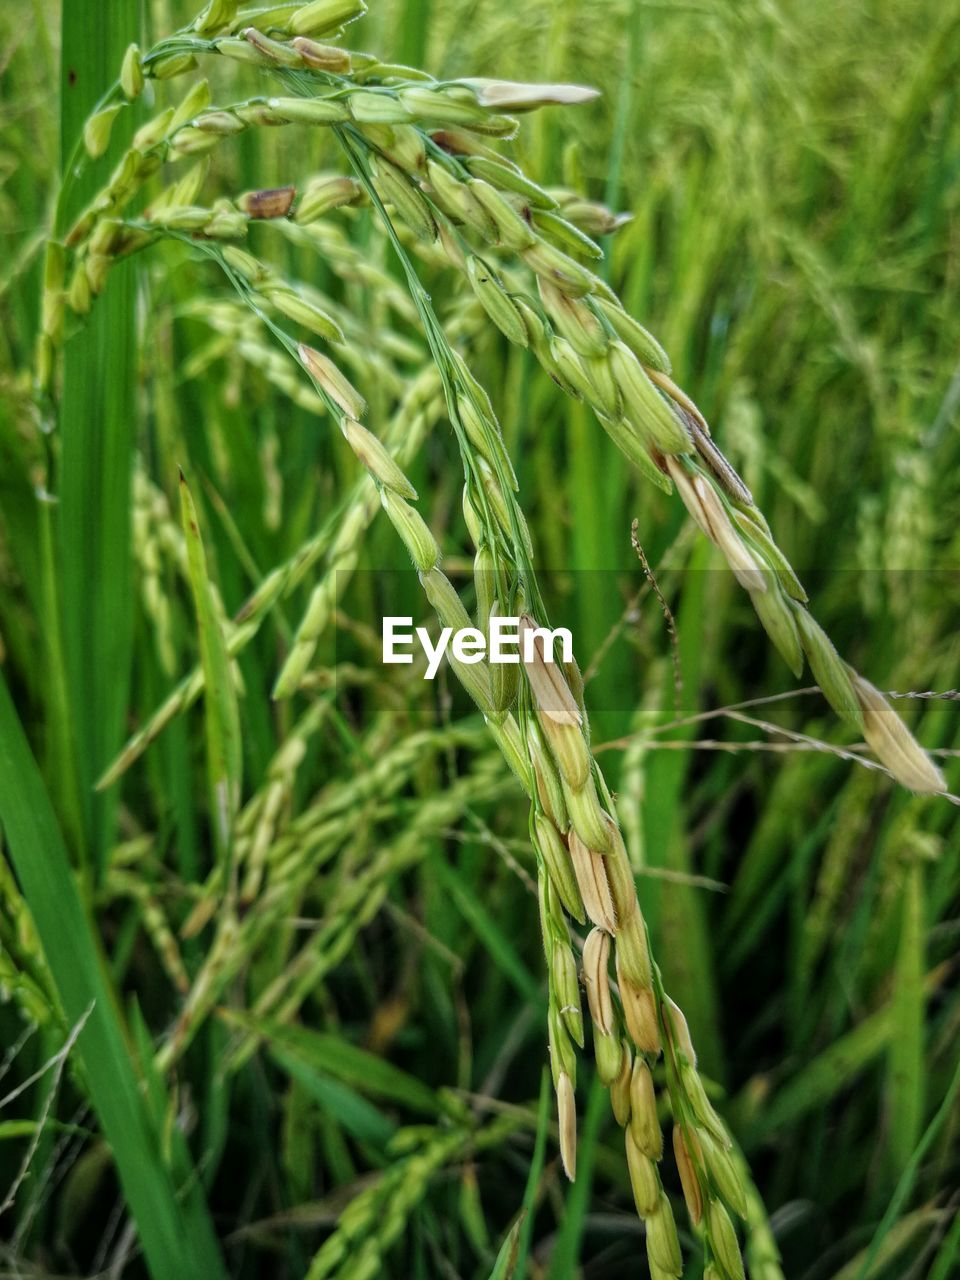 plant, crop, growth, green color, agriculture, cereal plant, nature, close-up, land, wheat, field, focus on foreground, day, rural scene, beauty in nature, farm, rice - cereal plant, no people, landscape, ear of wheat, outdoors, plantation, stalk